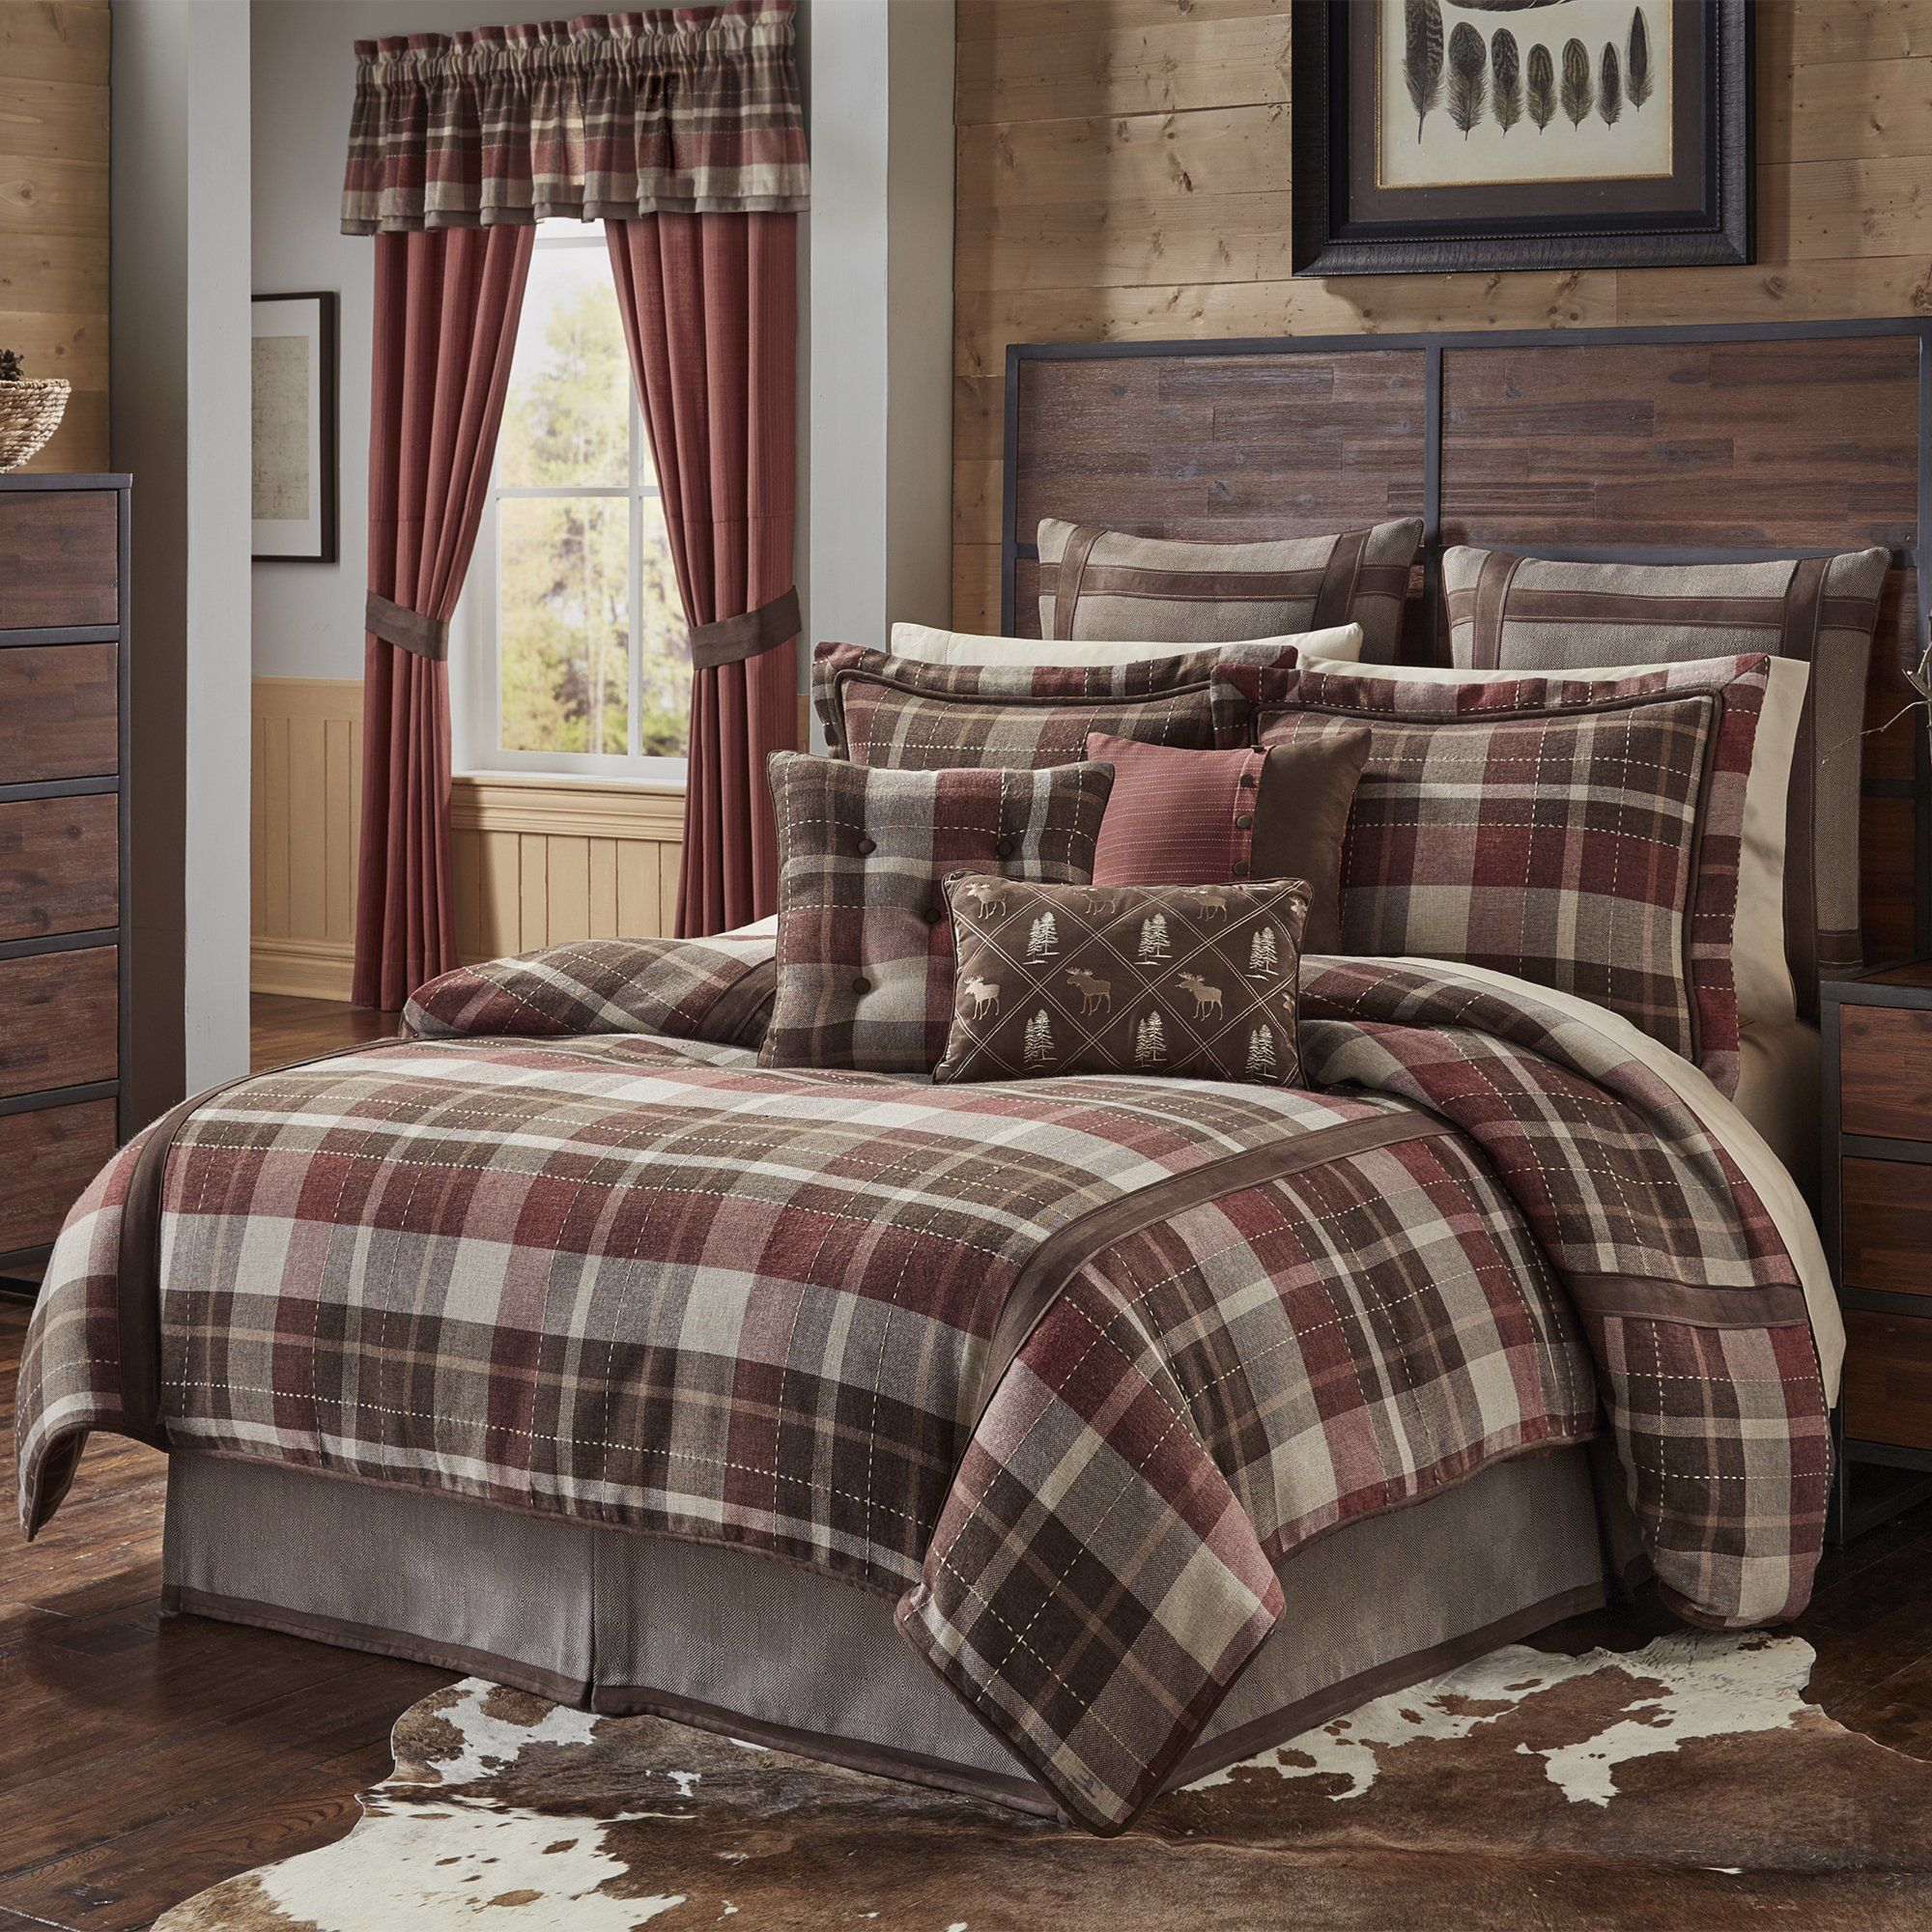 4 Piece Brown Tan Red Plaid Comforter King Set Cabin Themed Bedding Ivory Tartan Pattern Madras Southwest Western Plaid Comforter Comforter Sets Plaid Bedding